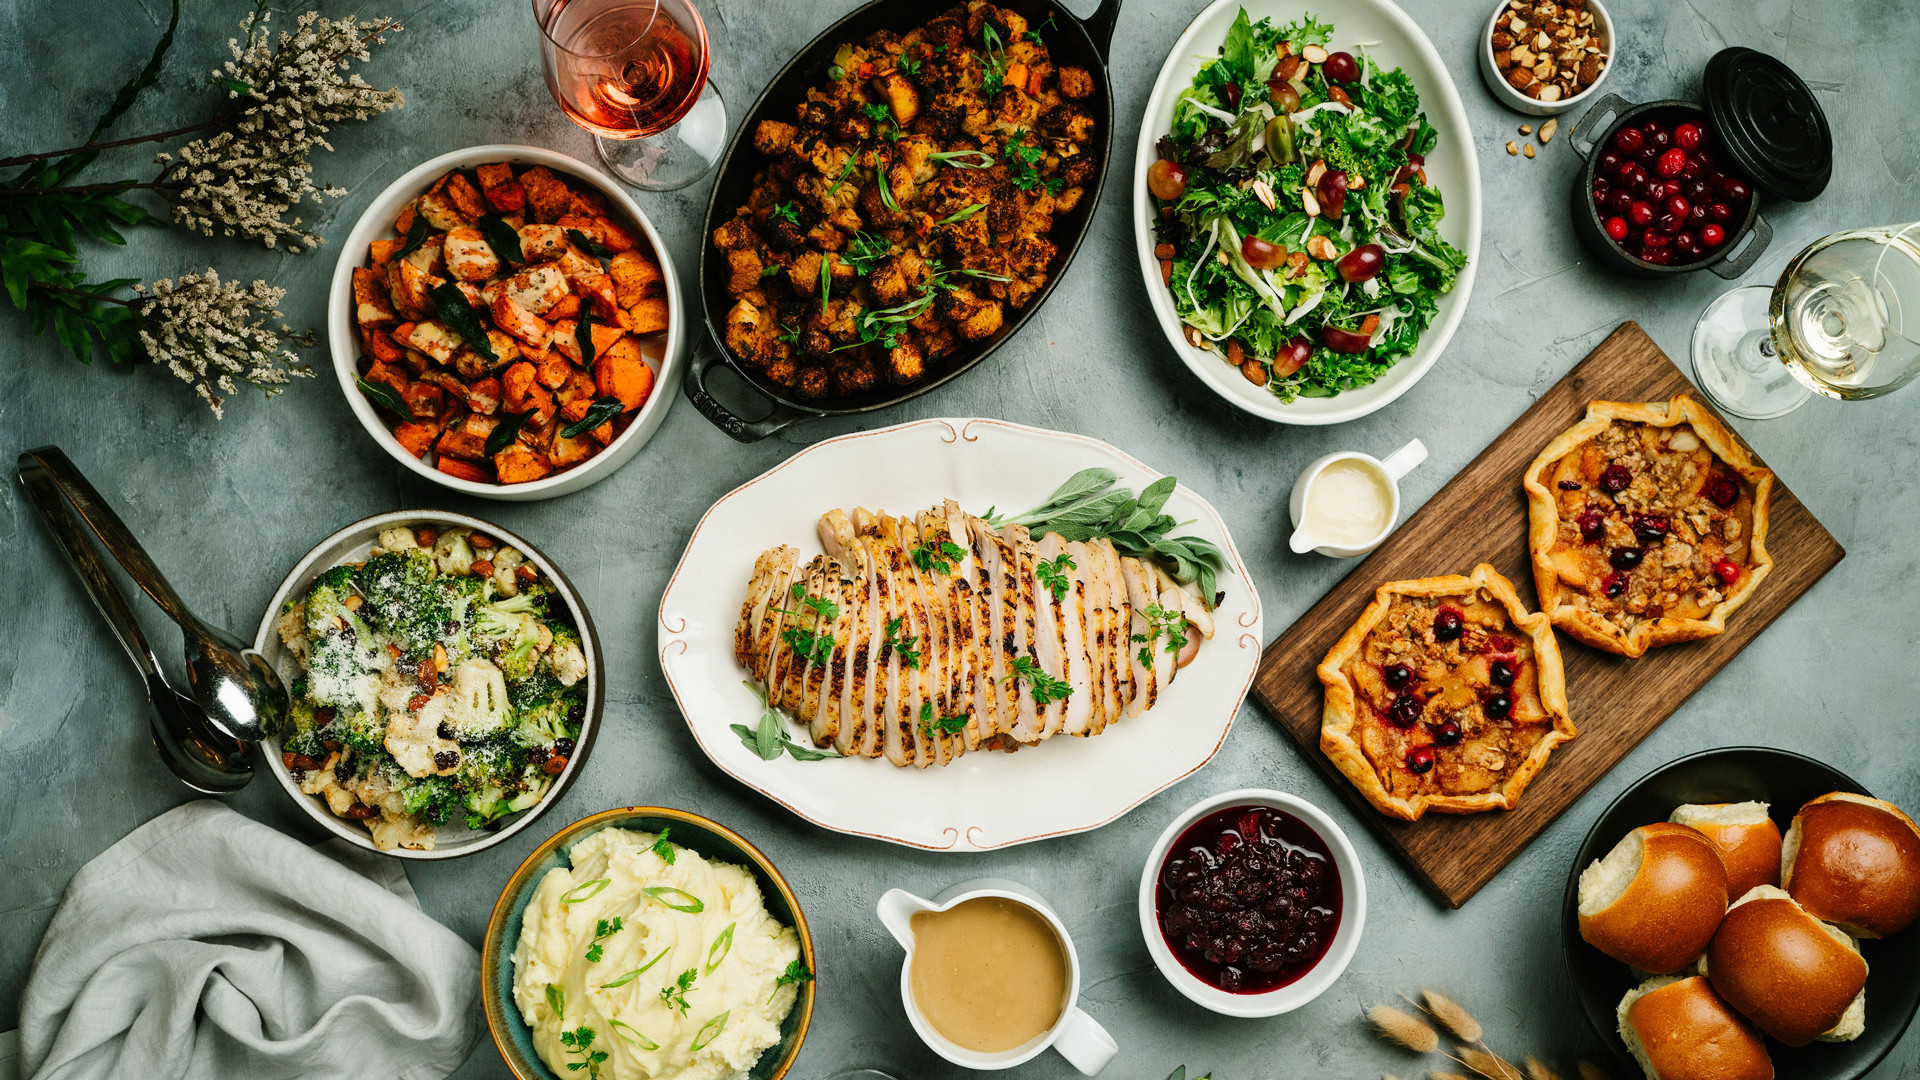 Thanksgiving dinner in Toronto   Oven roasted turkey and other Thanksgiving dishes at JOEY